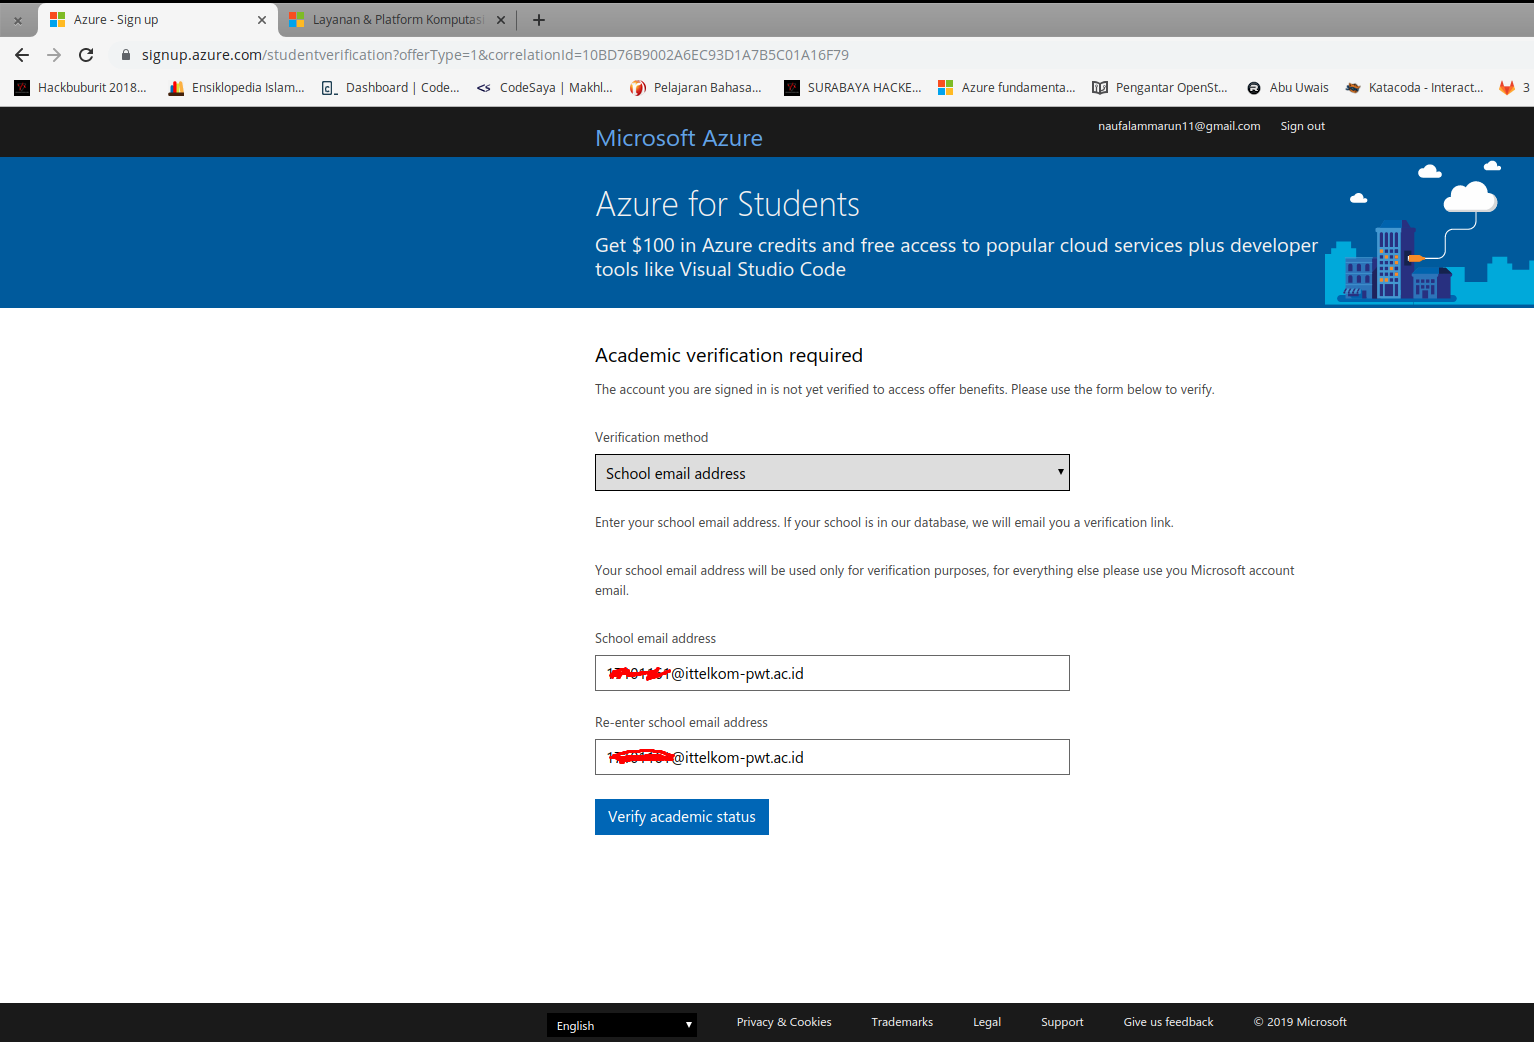 Azure-Email